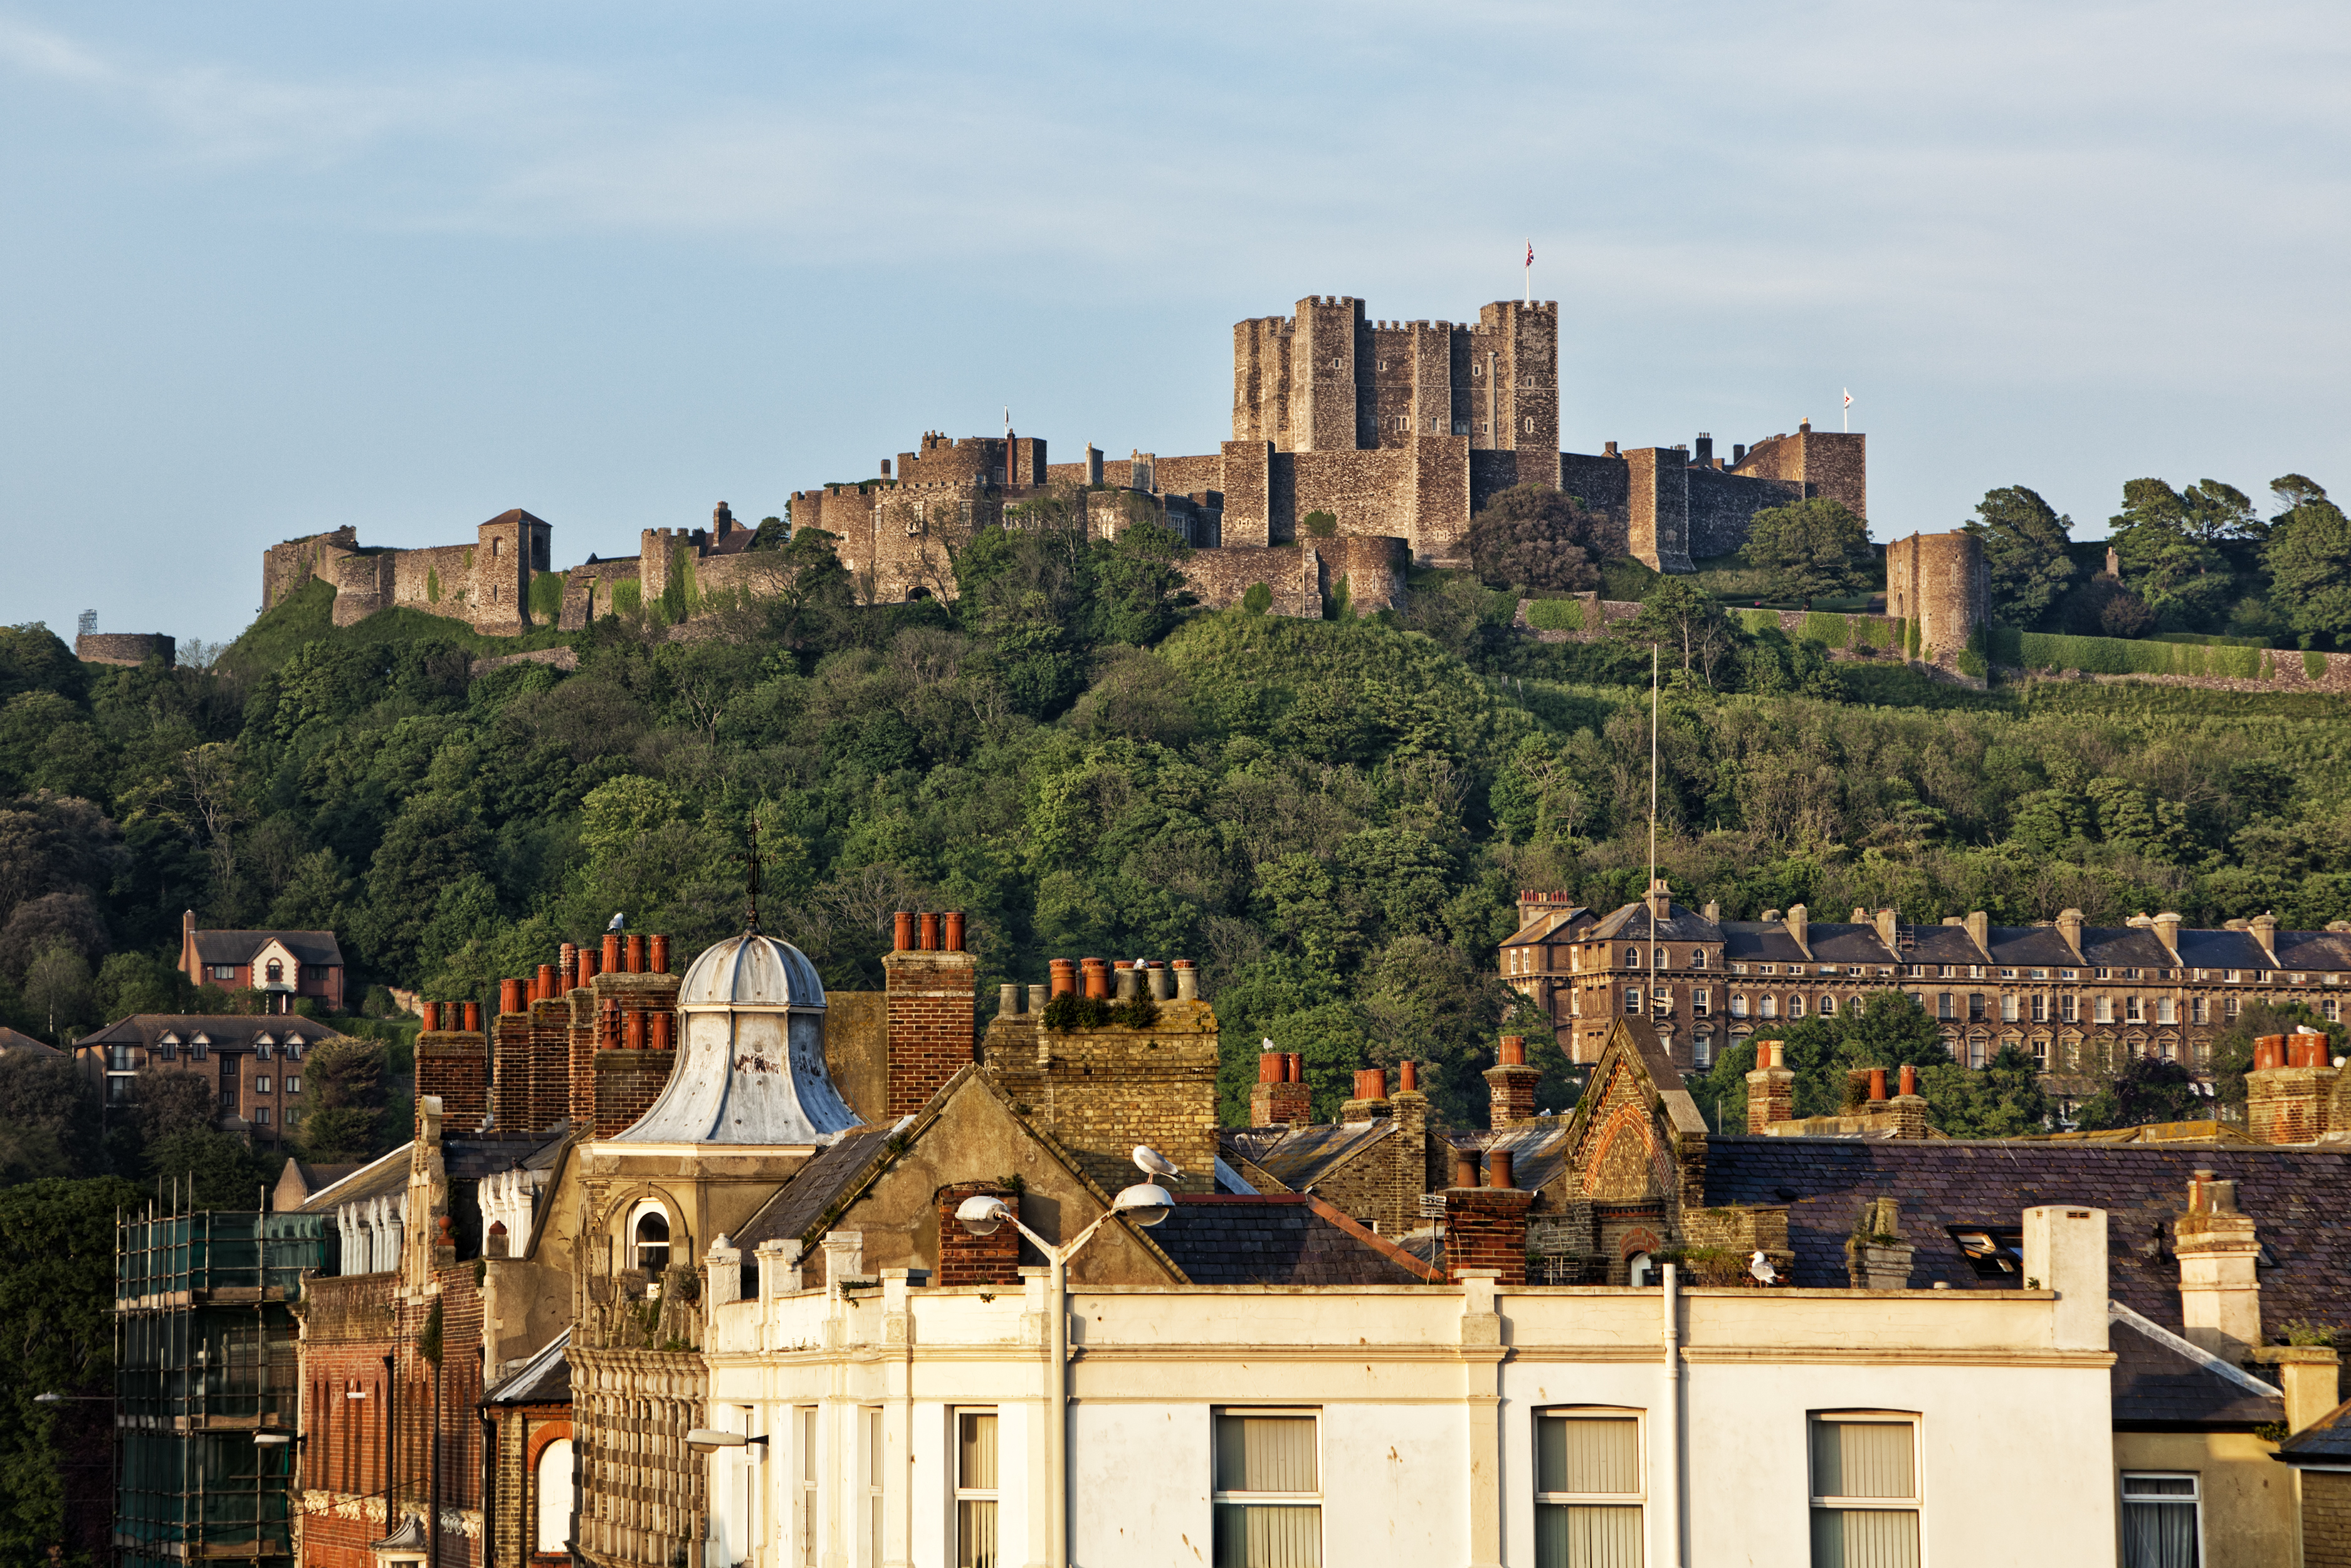 Plan a Fairy-Tale Day Out in a UK Castle